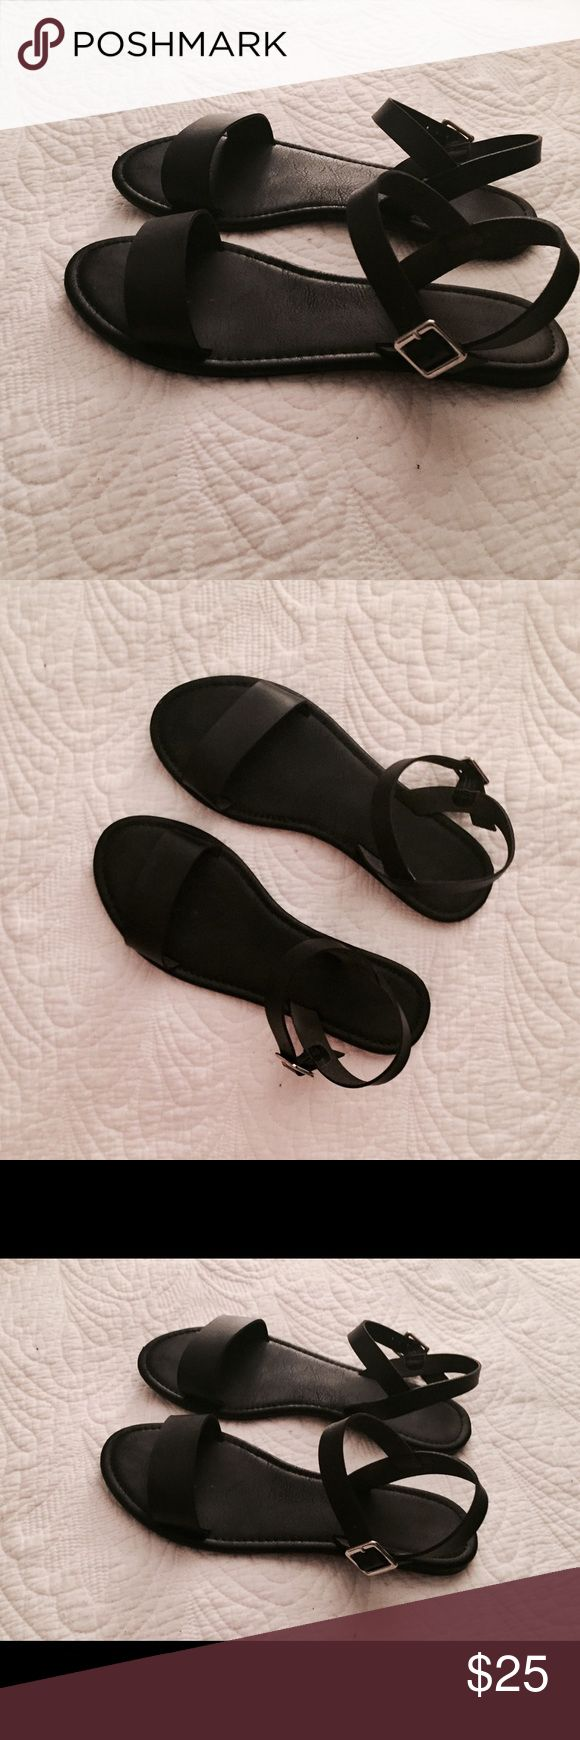 Solid black flat sandals Black flats, size 8.5 (unmarked). Worn once or twice. Thick front strap and sturdy adjustable back strap. In great condition! Shoes Sandals